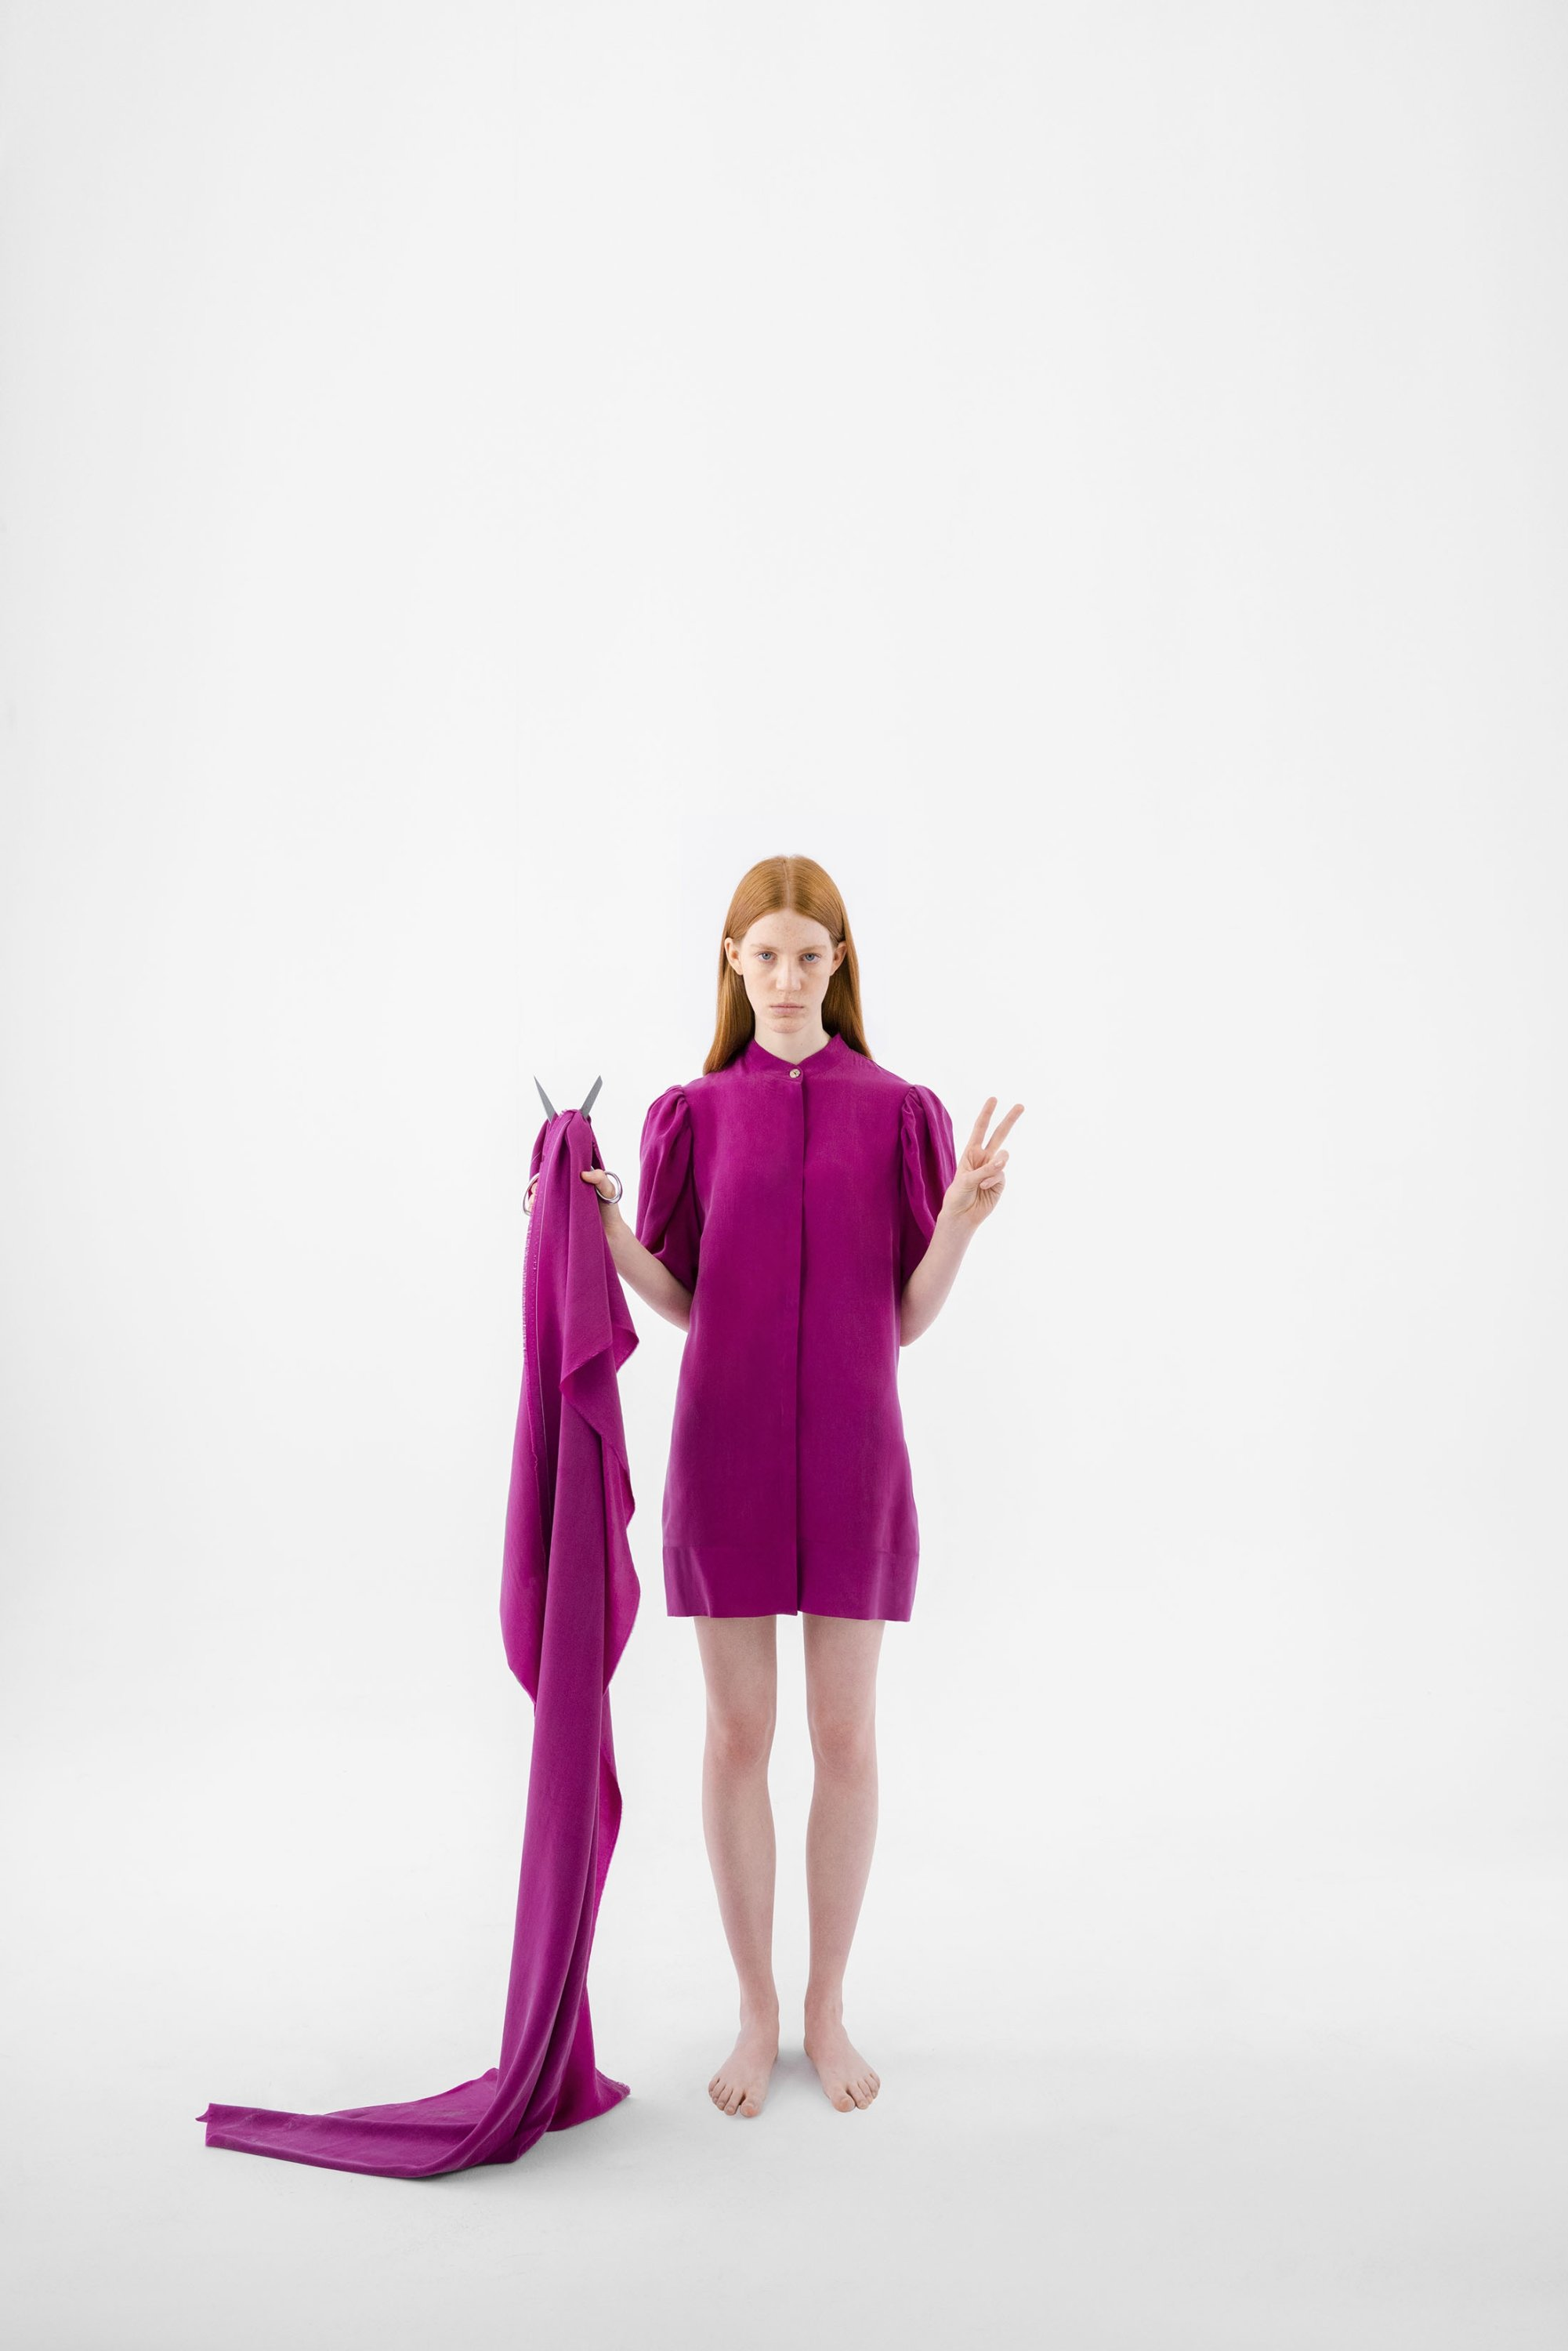 A look from Giyi's first sustainable collection. (Photo courtesy of Göknil Bigan)